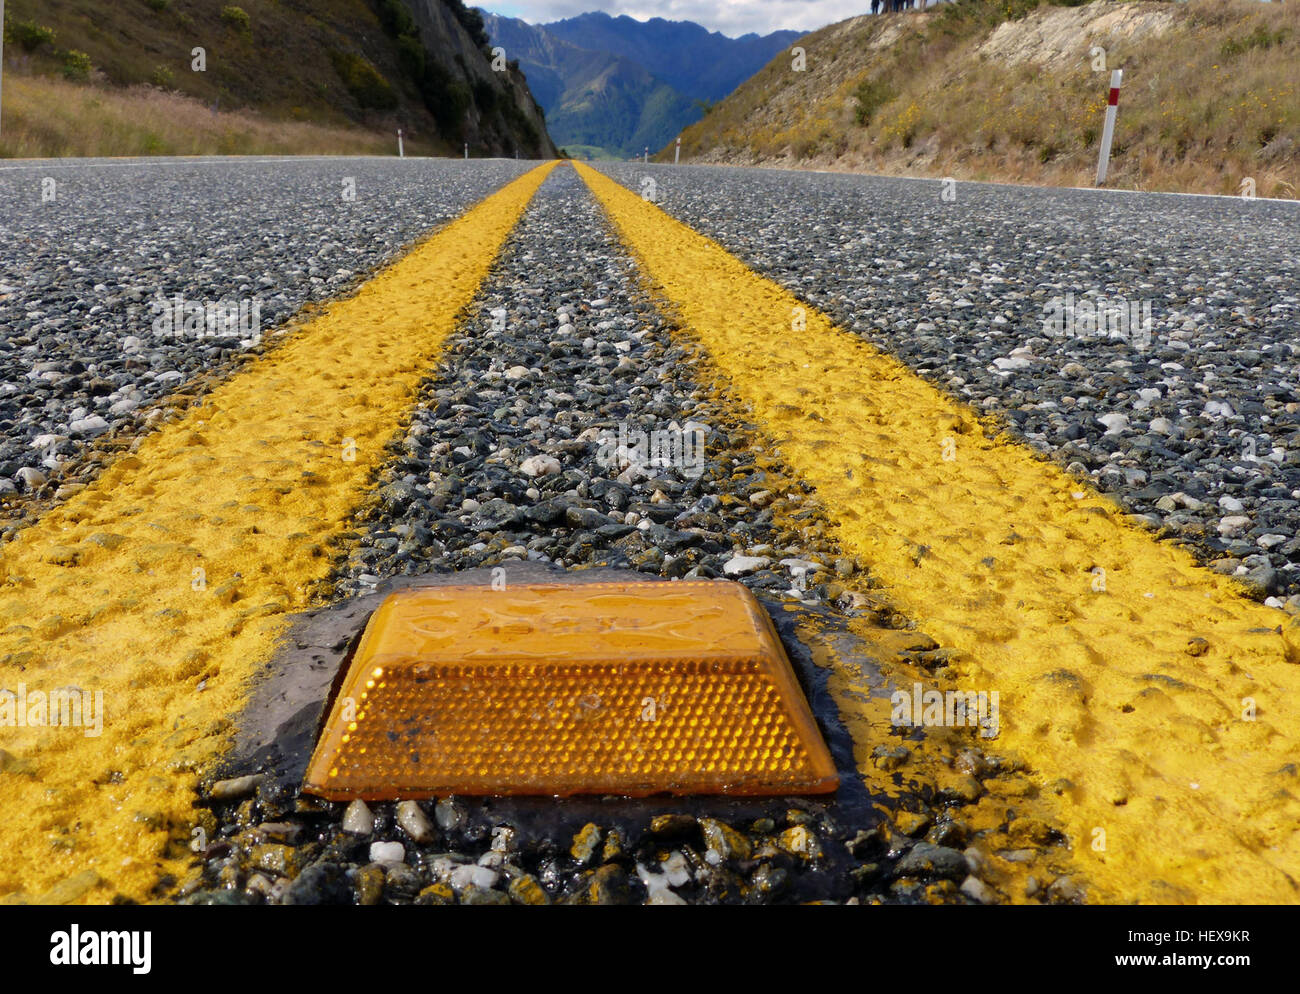 Yellow cat's eyes, road studs or retroreflective raised pavement markers (RRPMs) are used to visually reinforce - Stock Image